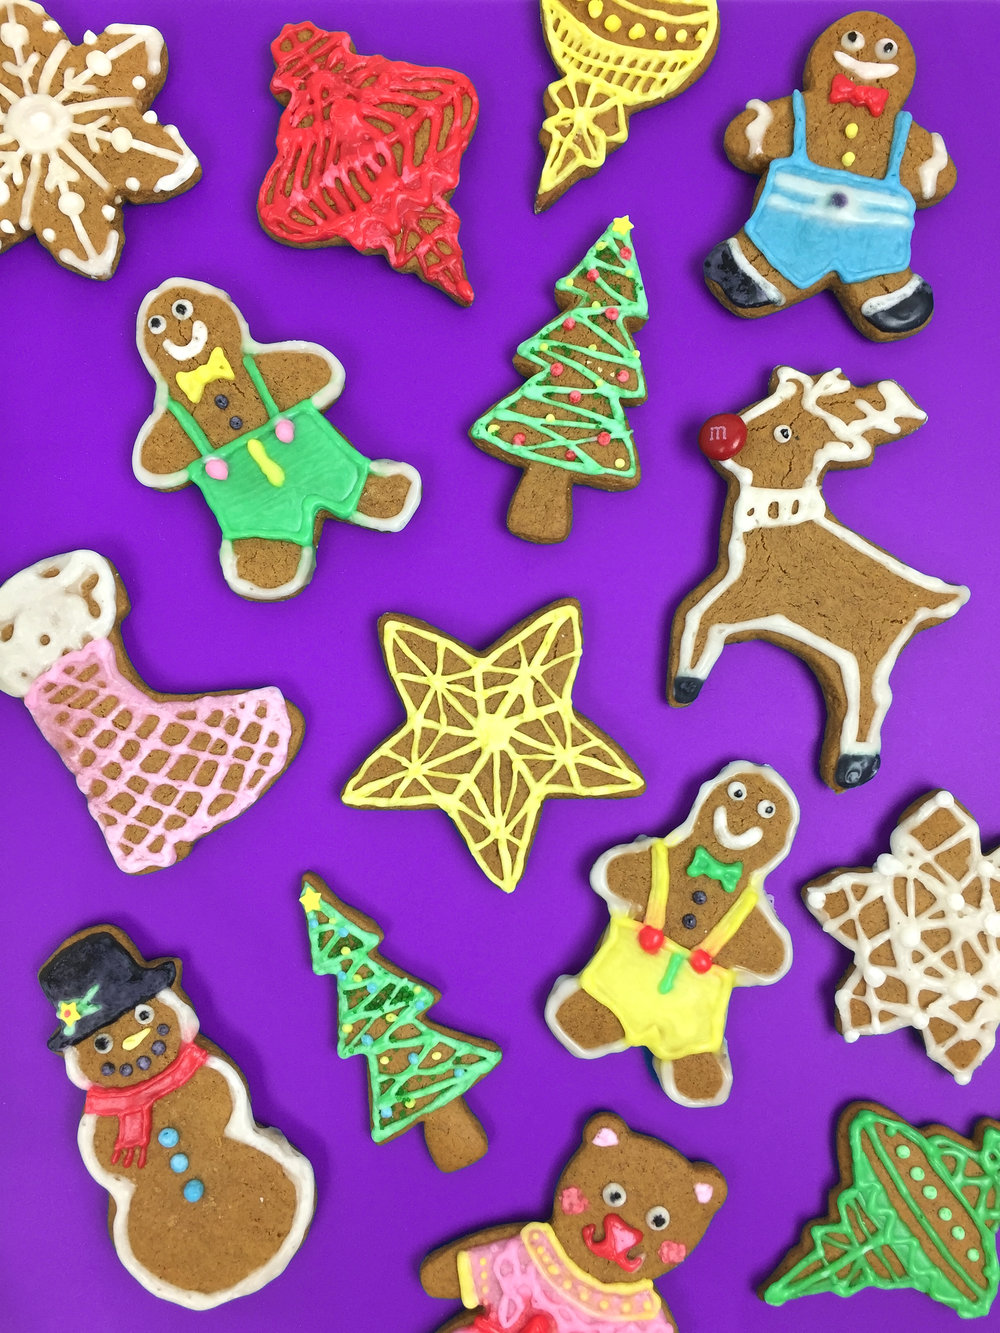 amy_chen_design_christmas_cookies_gingerbread.jpg